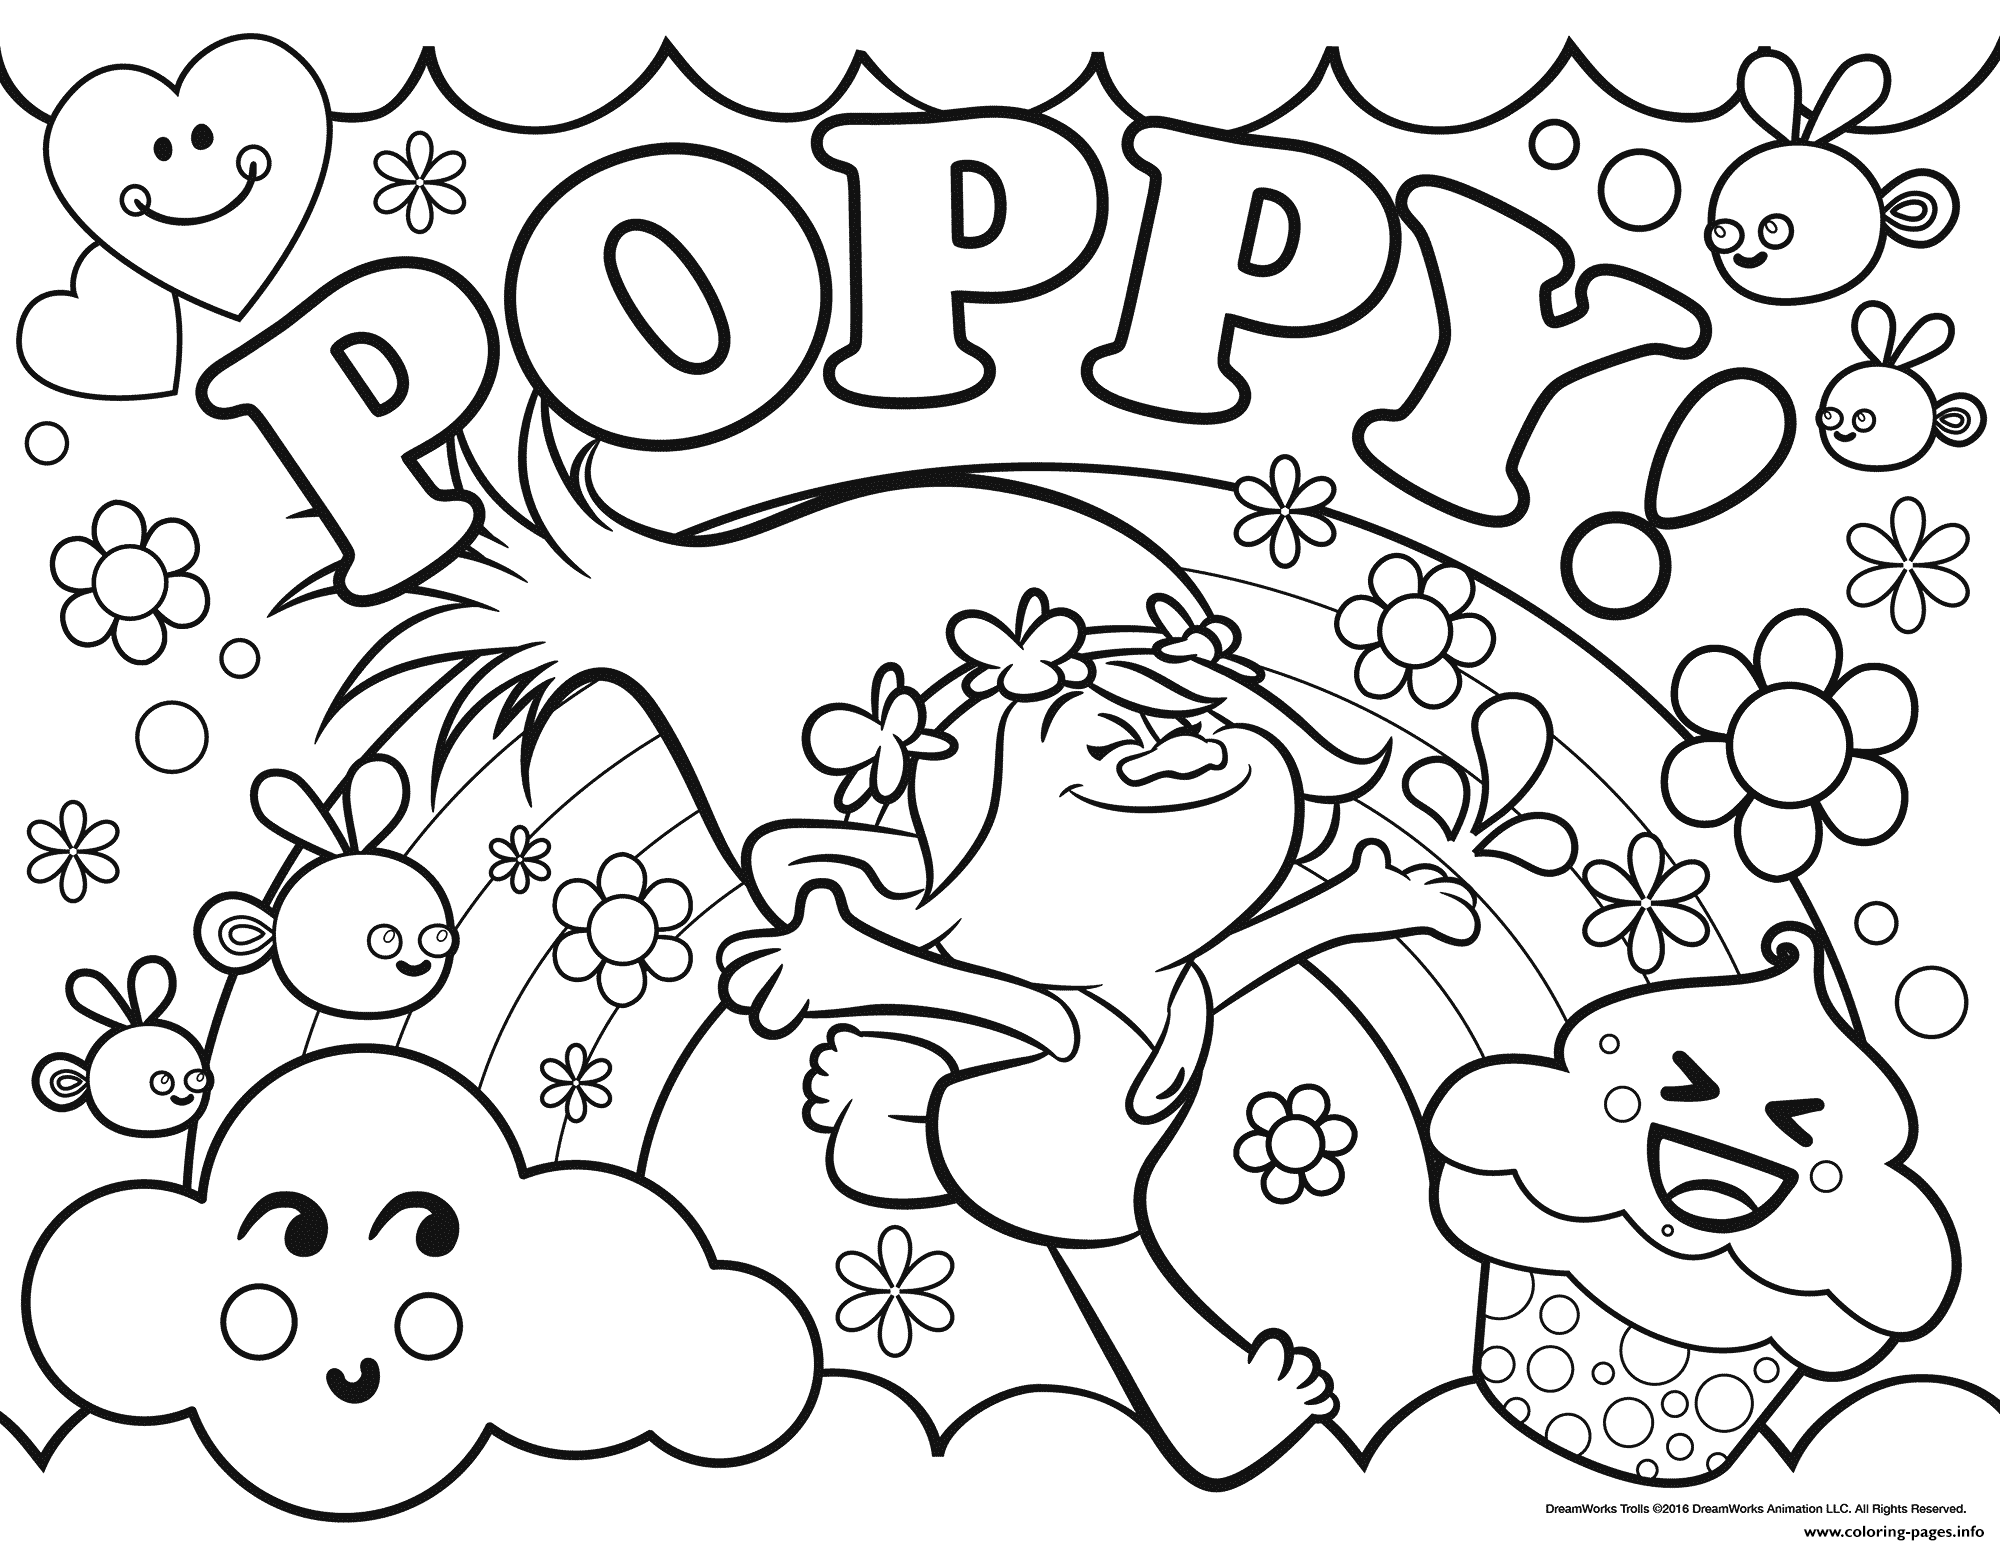 Print Trolls Poppy Coloring Pages Birthday Poppy Coloring Page Coloring Pages To Print Cartoon Coloring Pages